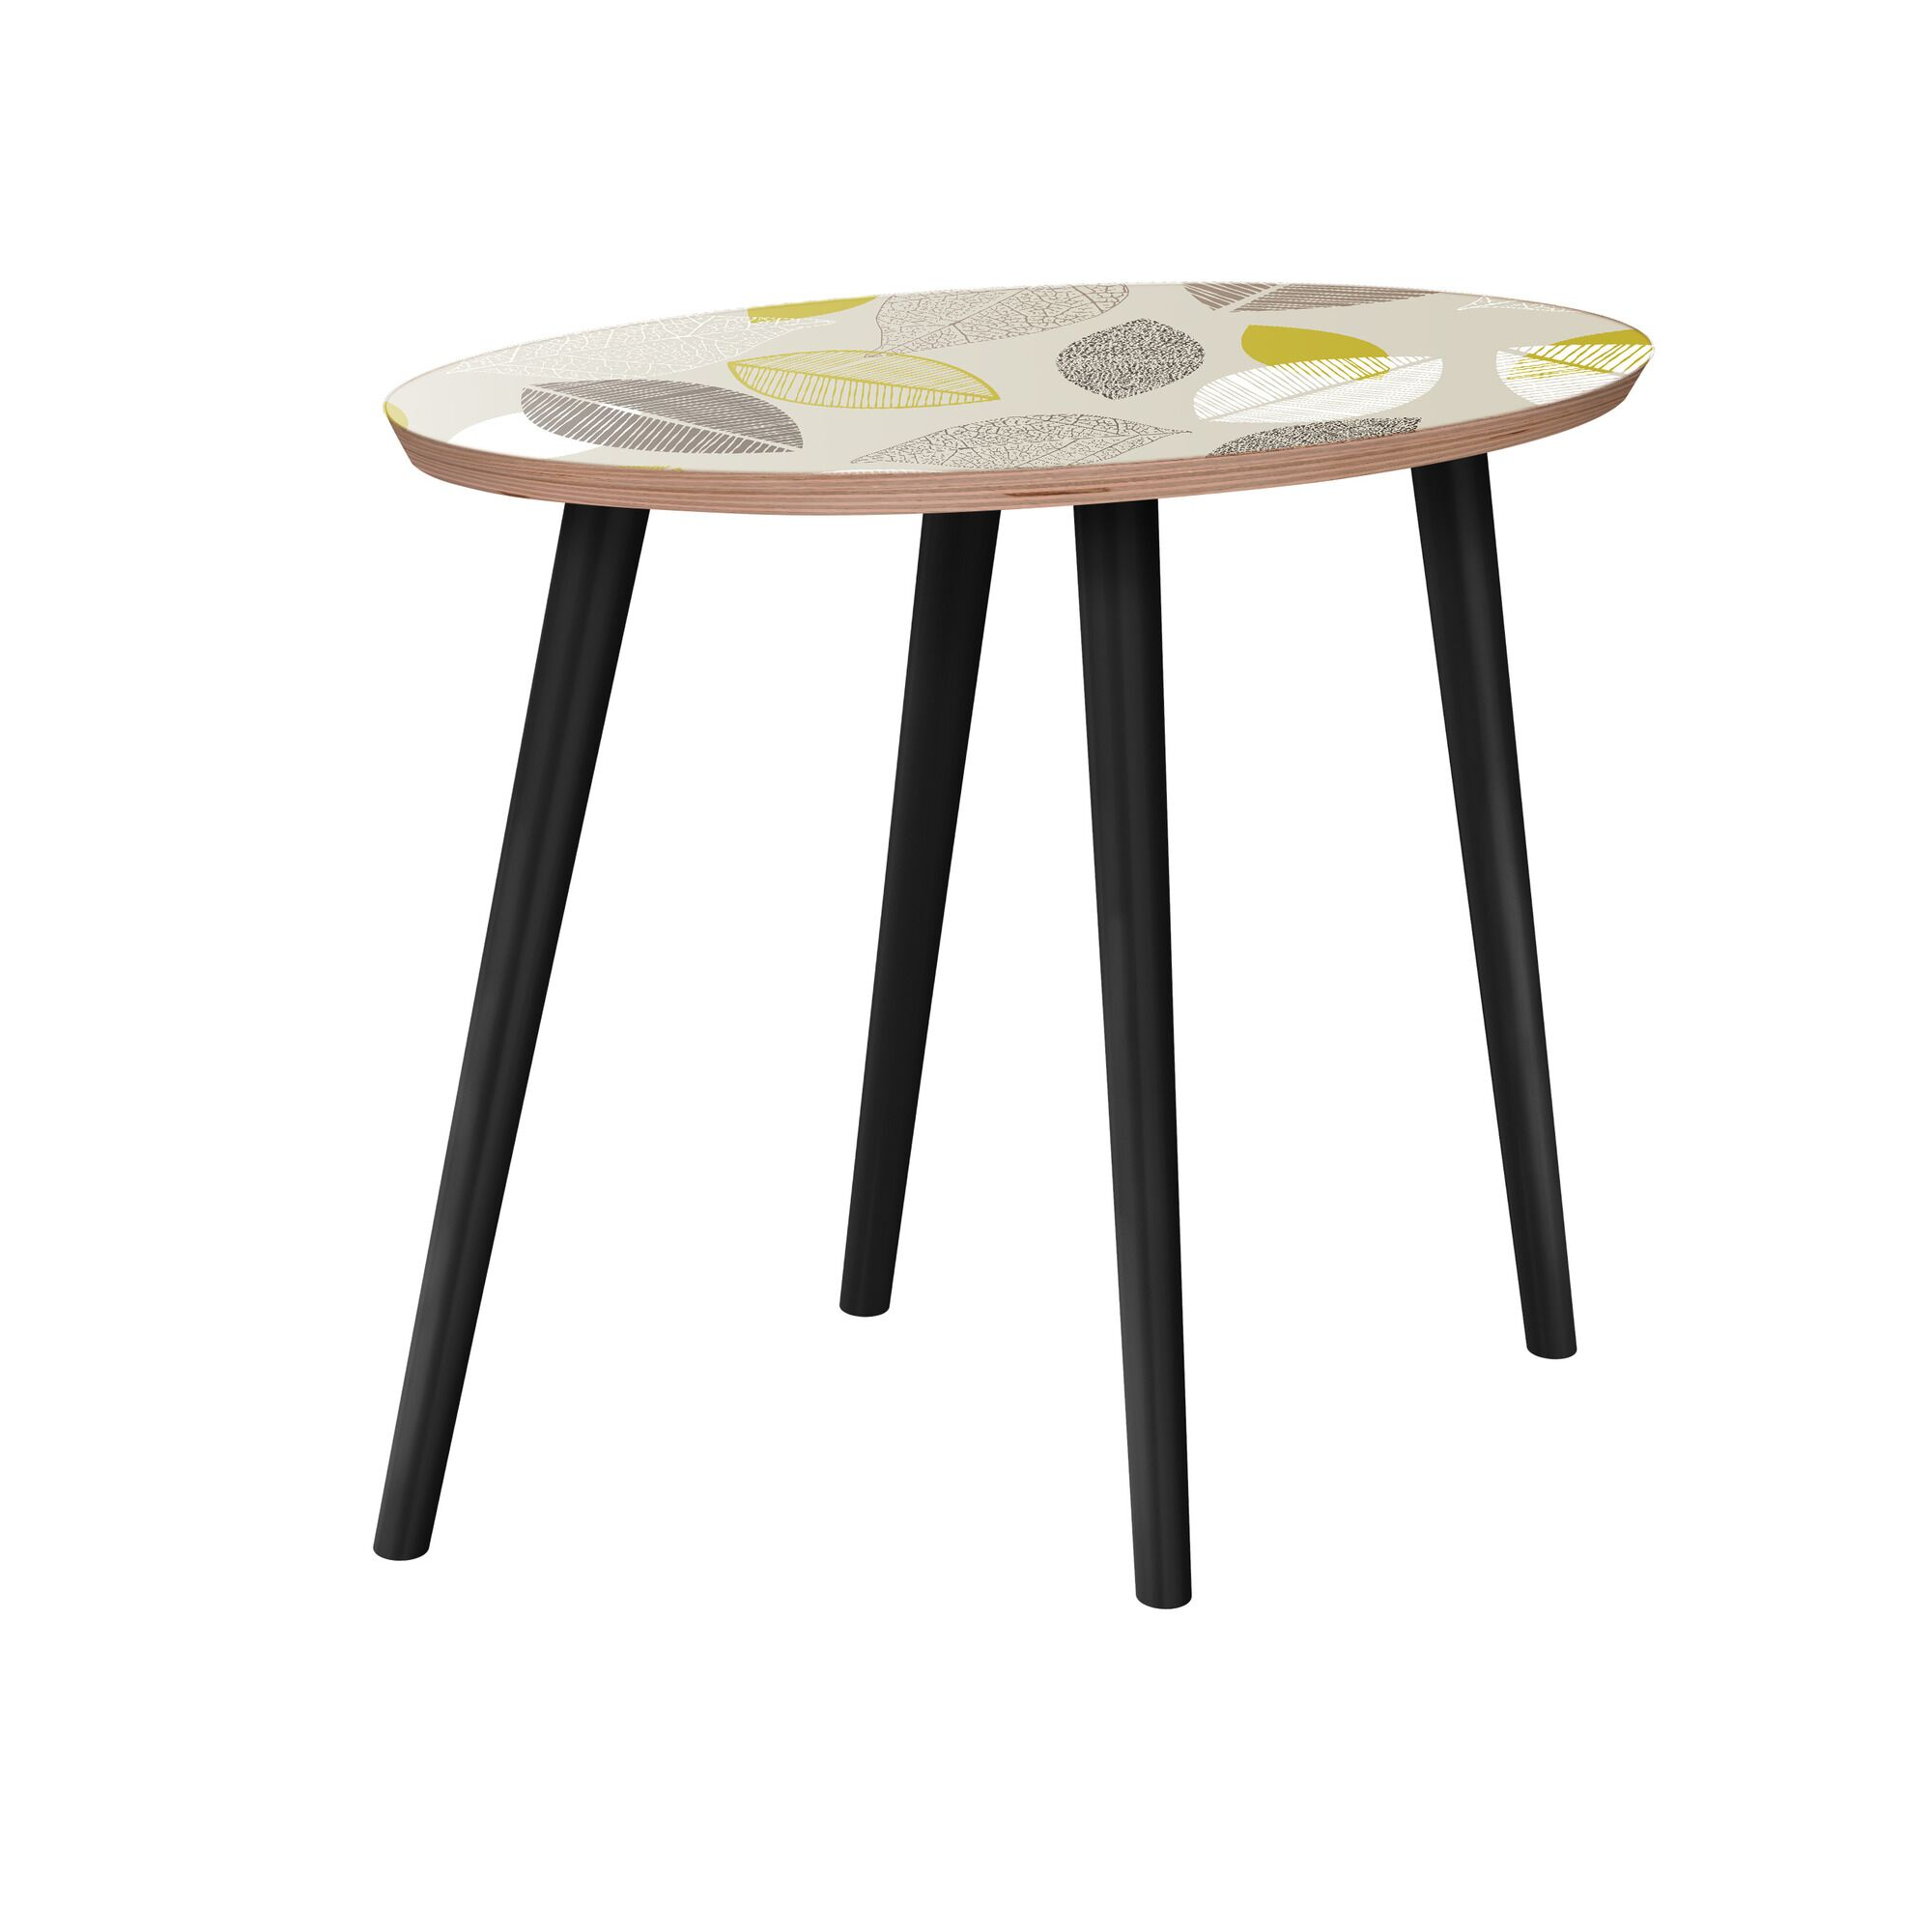 Krystin End Table Table Base Color: Black, Table Top Boarder Color: Walnut, Table Top Color: Green/Brown